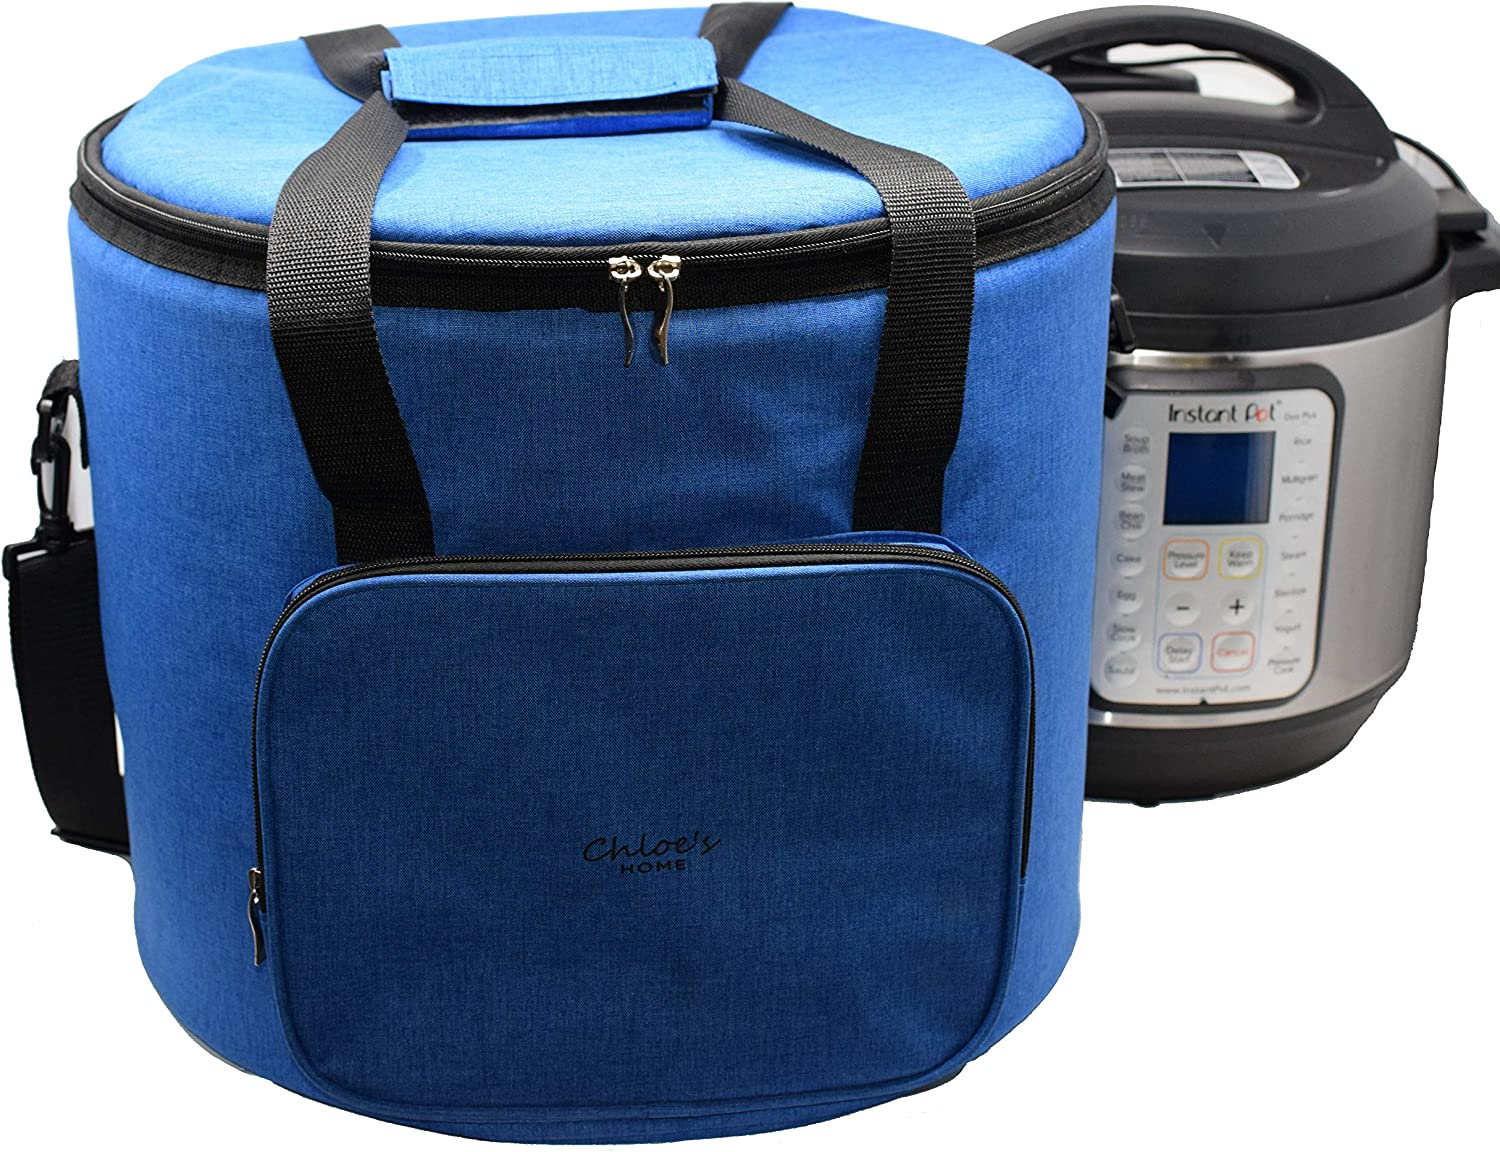 Chloe's Home Travel Bag for Instant Pot (6QT Royal Blue) – Versatile Tote Bag For Small Appliances & More With Carrying Strap, Handles & External Zip Pocket- Instant Pot Accessories For Traveling